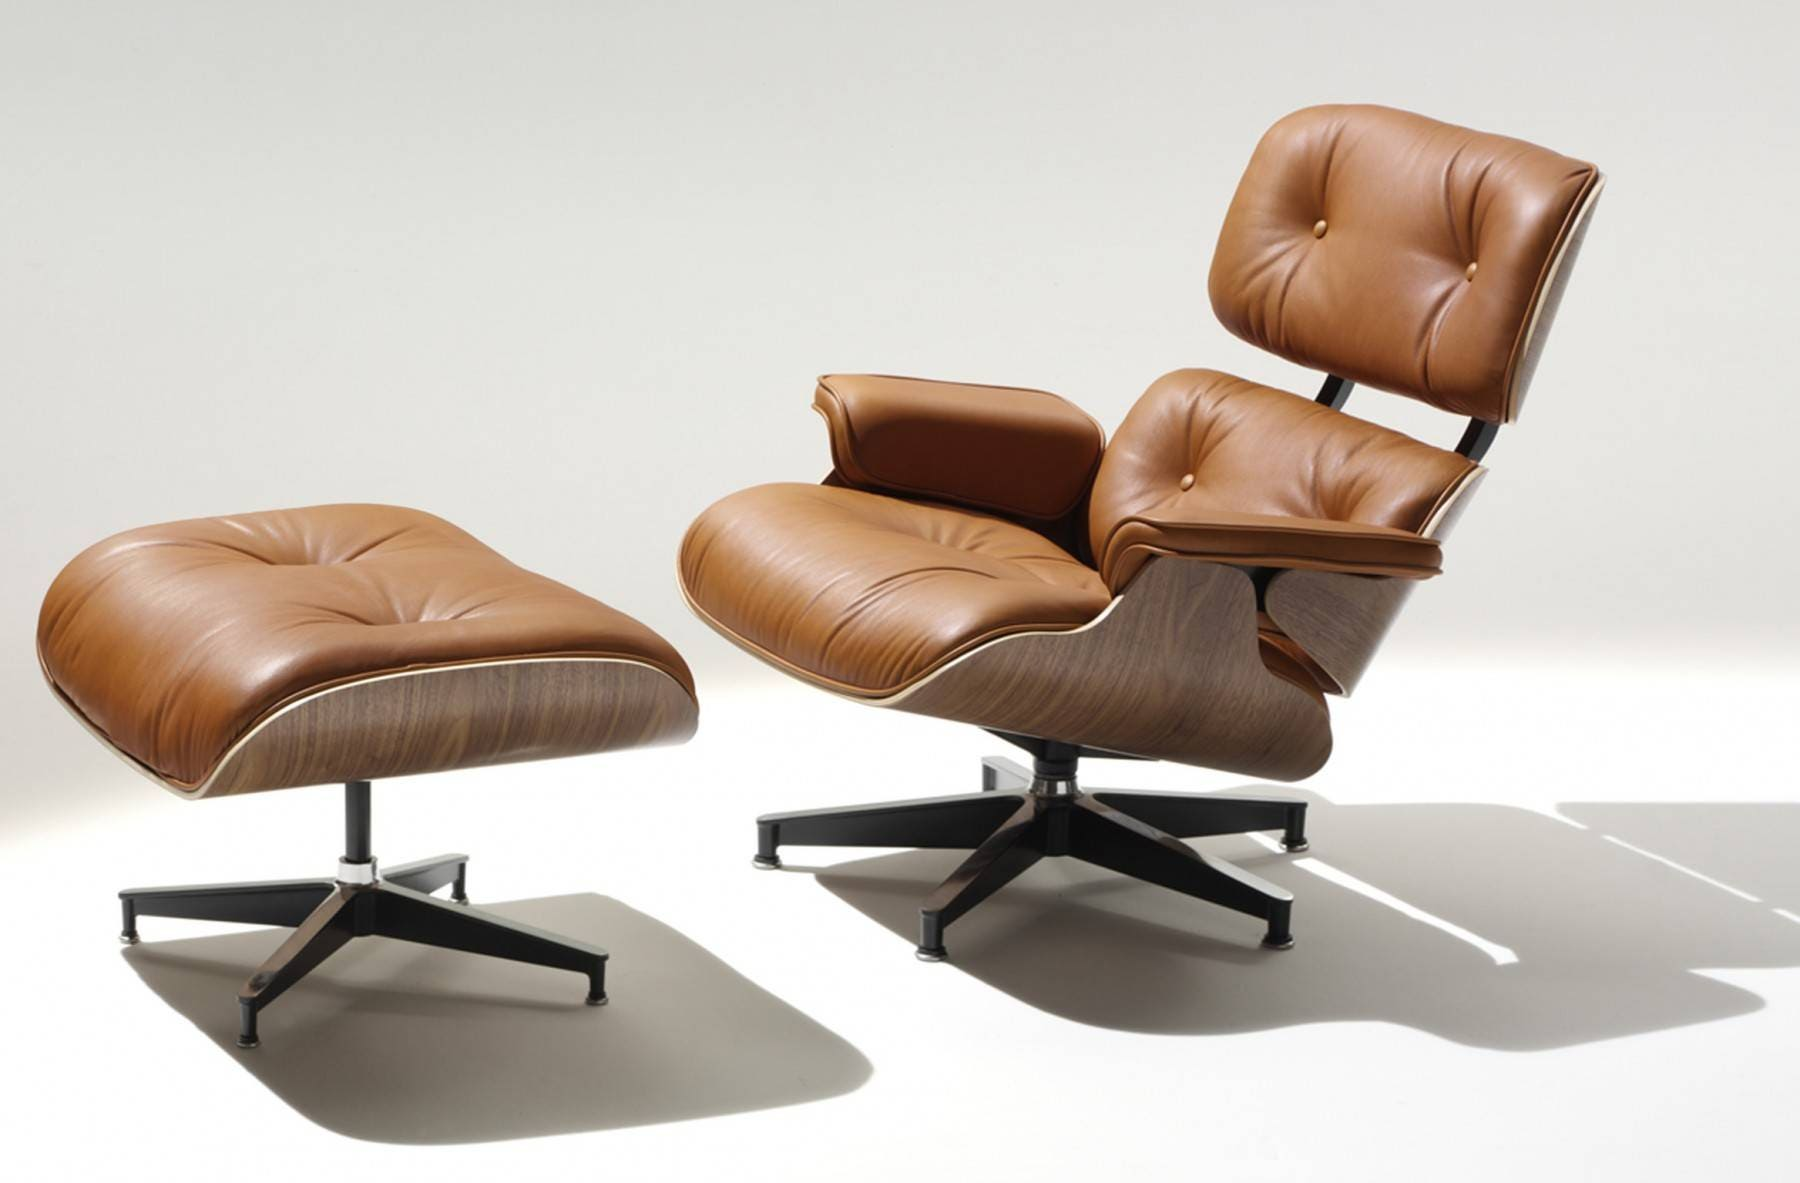 chair hqdefault review replica the gaming miller eames watch lounge herman best